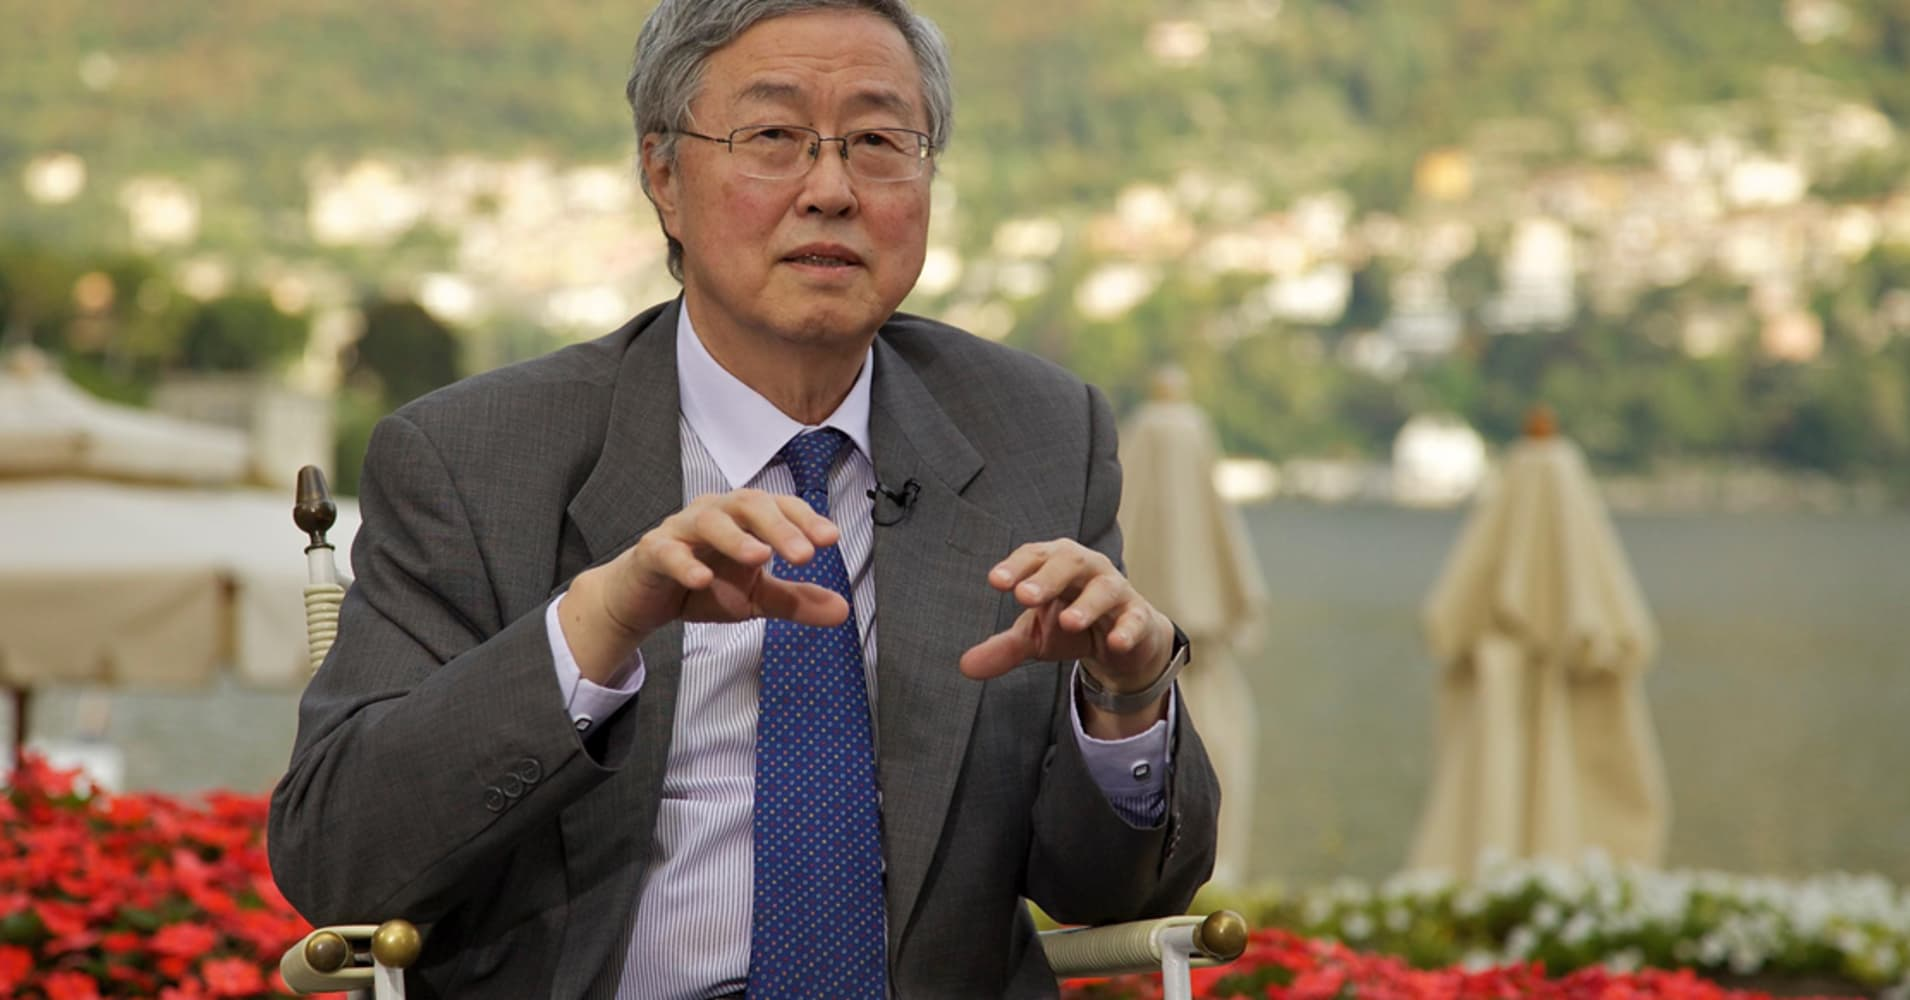 China's stock market is still immature so volatility is to be expected, former PBOC governor says